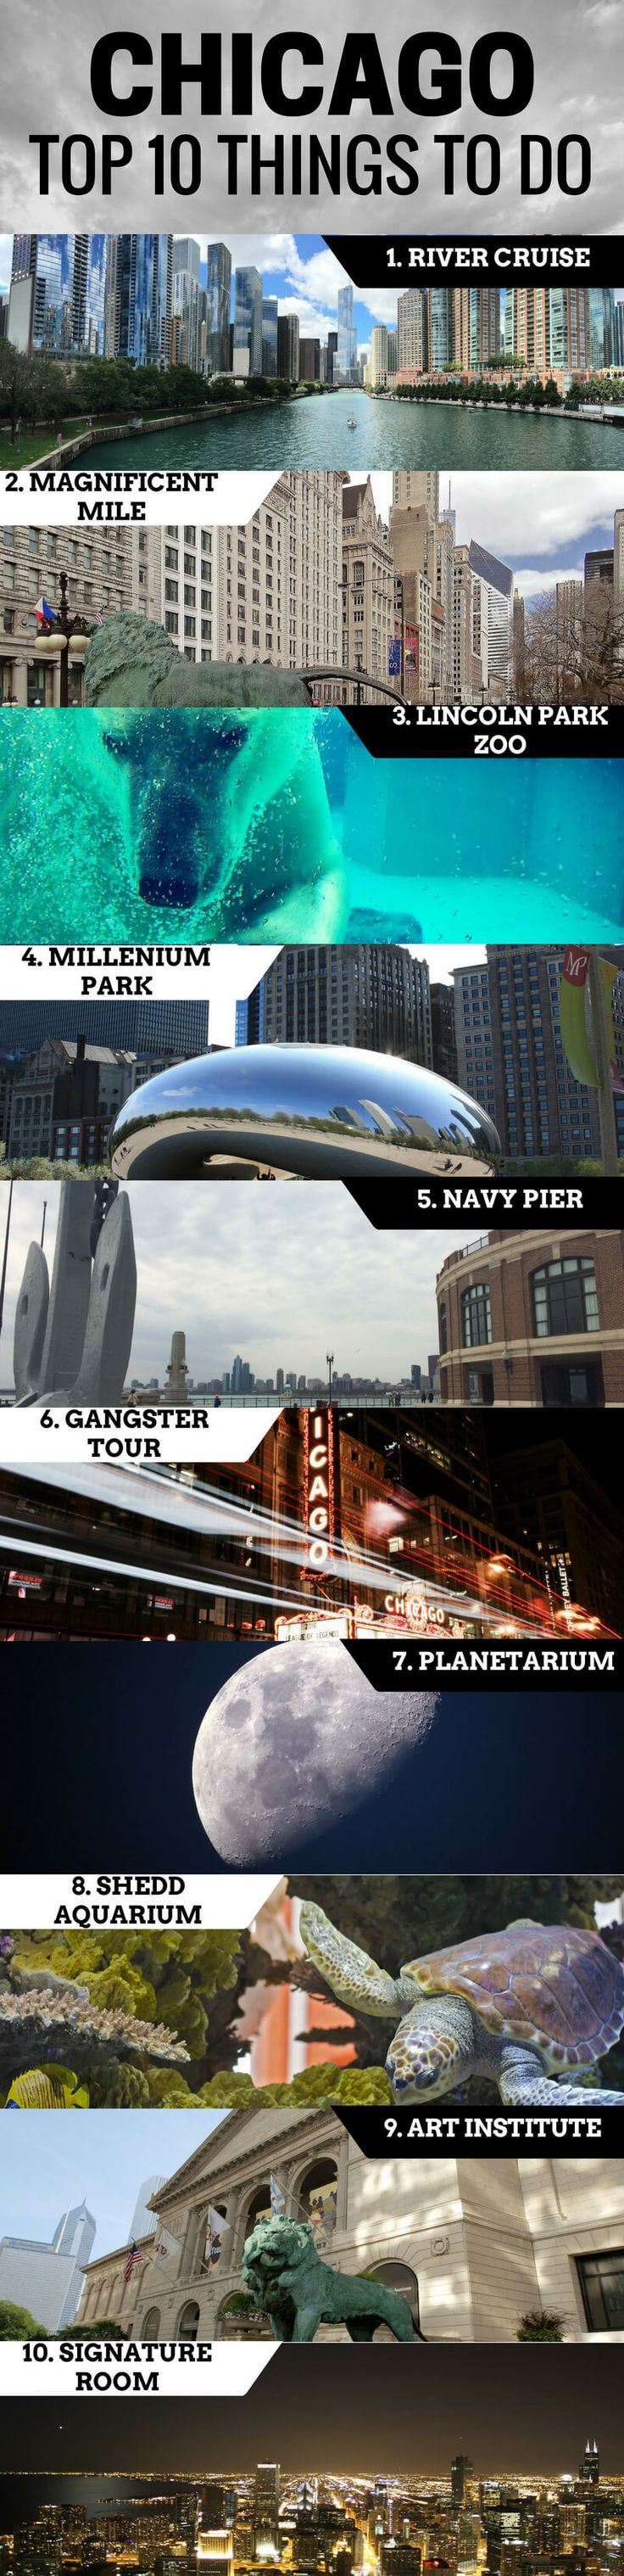 48 Hours in Chicago: Things To Do, Where To Stay s Highlights to make help plan your weekend trip